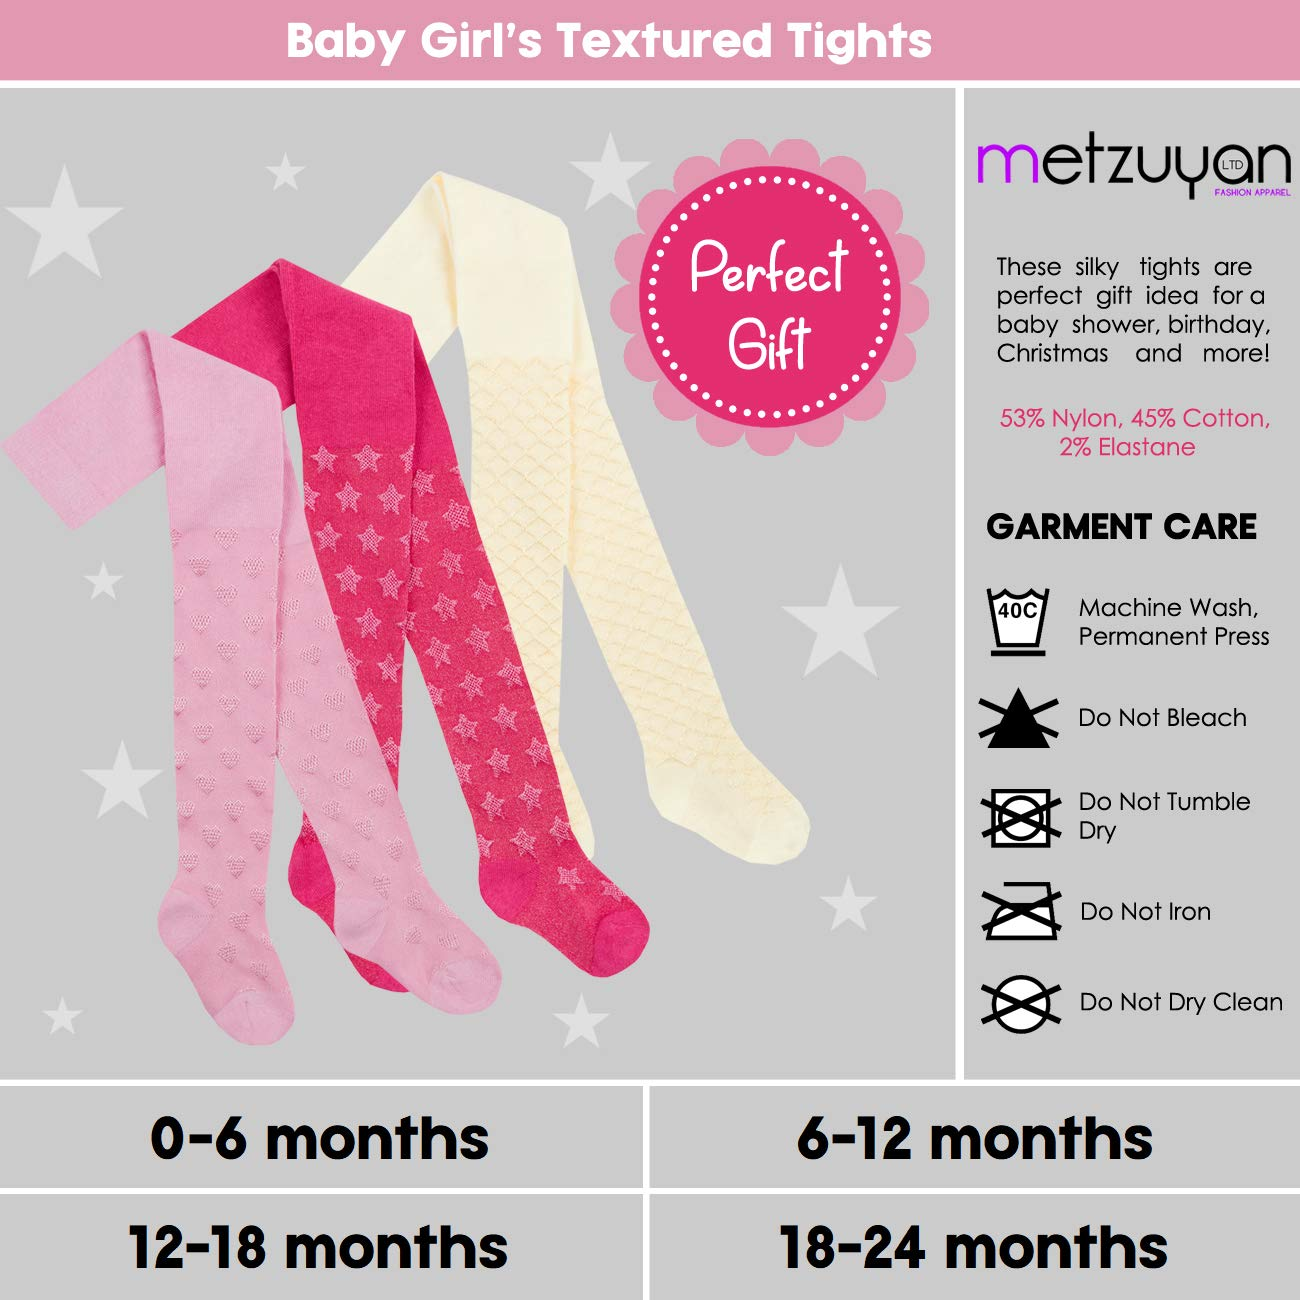 Metzuyan Baby Girl Infant Shiny Tights Silky Textured Design 3 Pairs Cream /& Hot Pink /& Light Pink 18-24 months